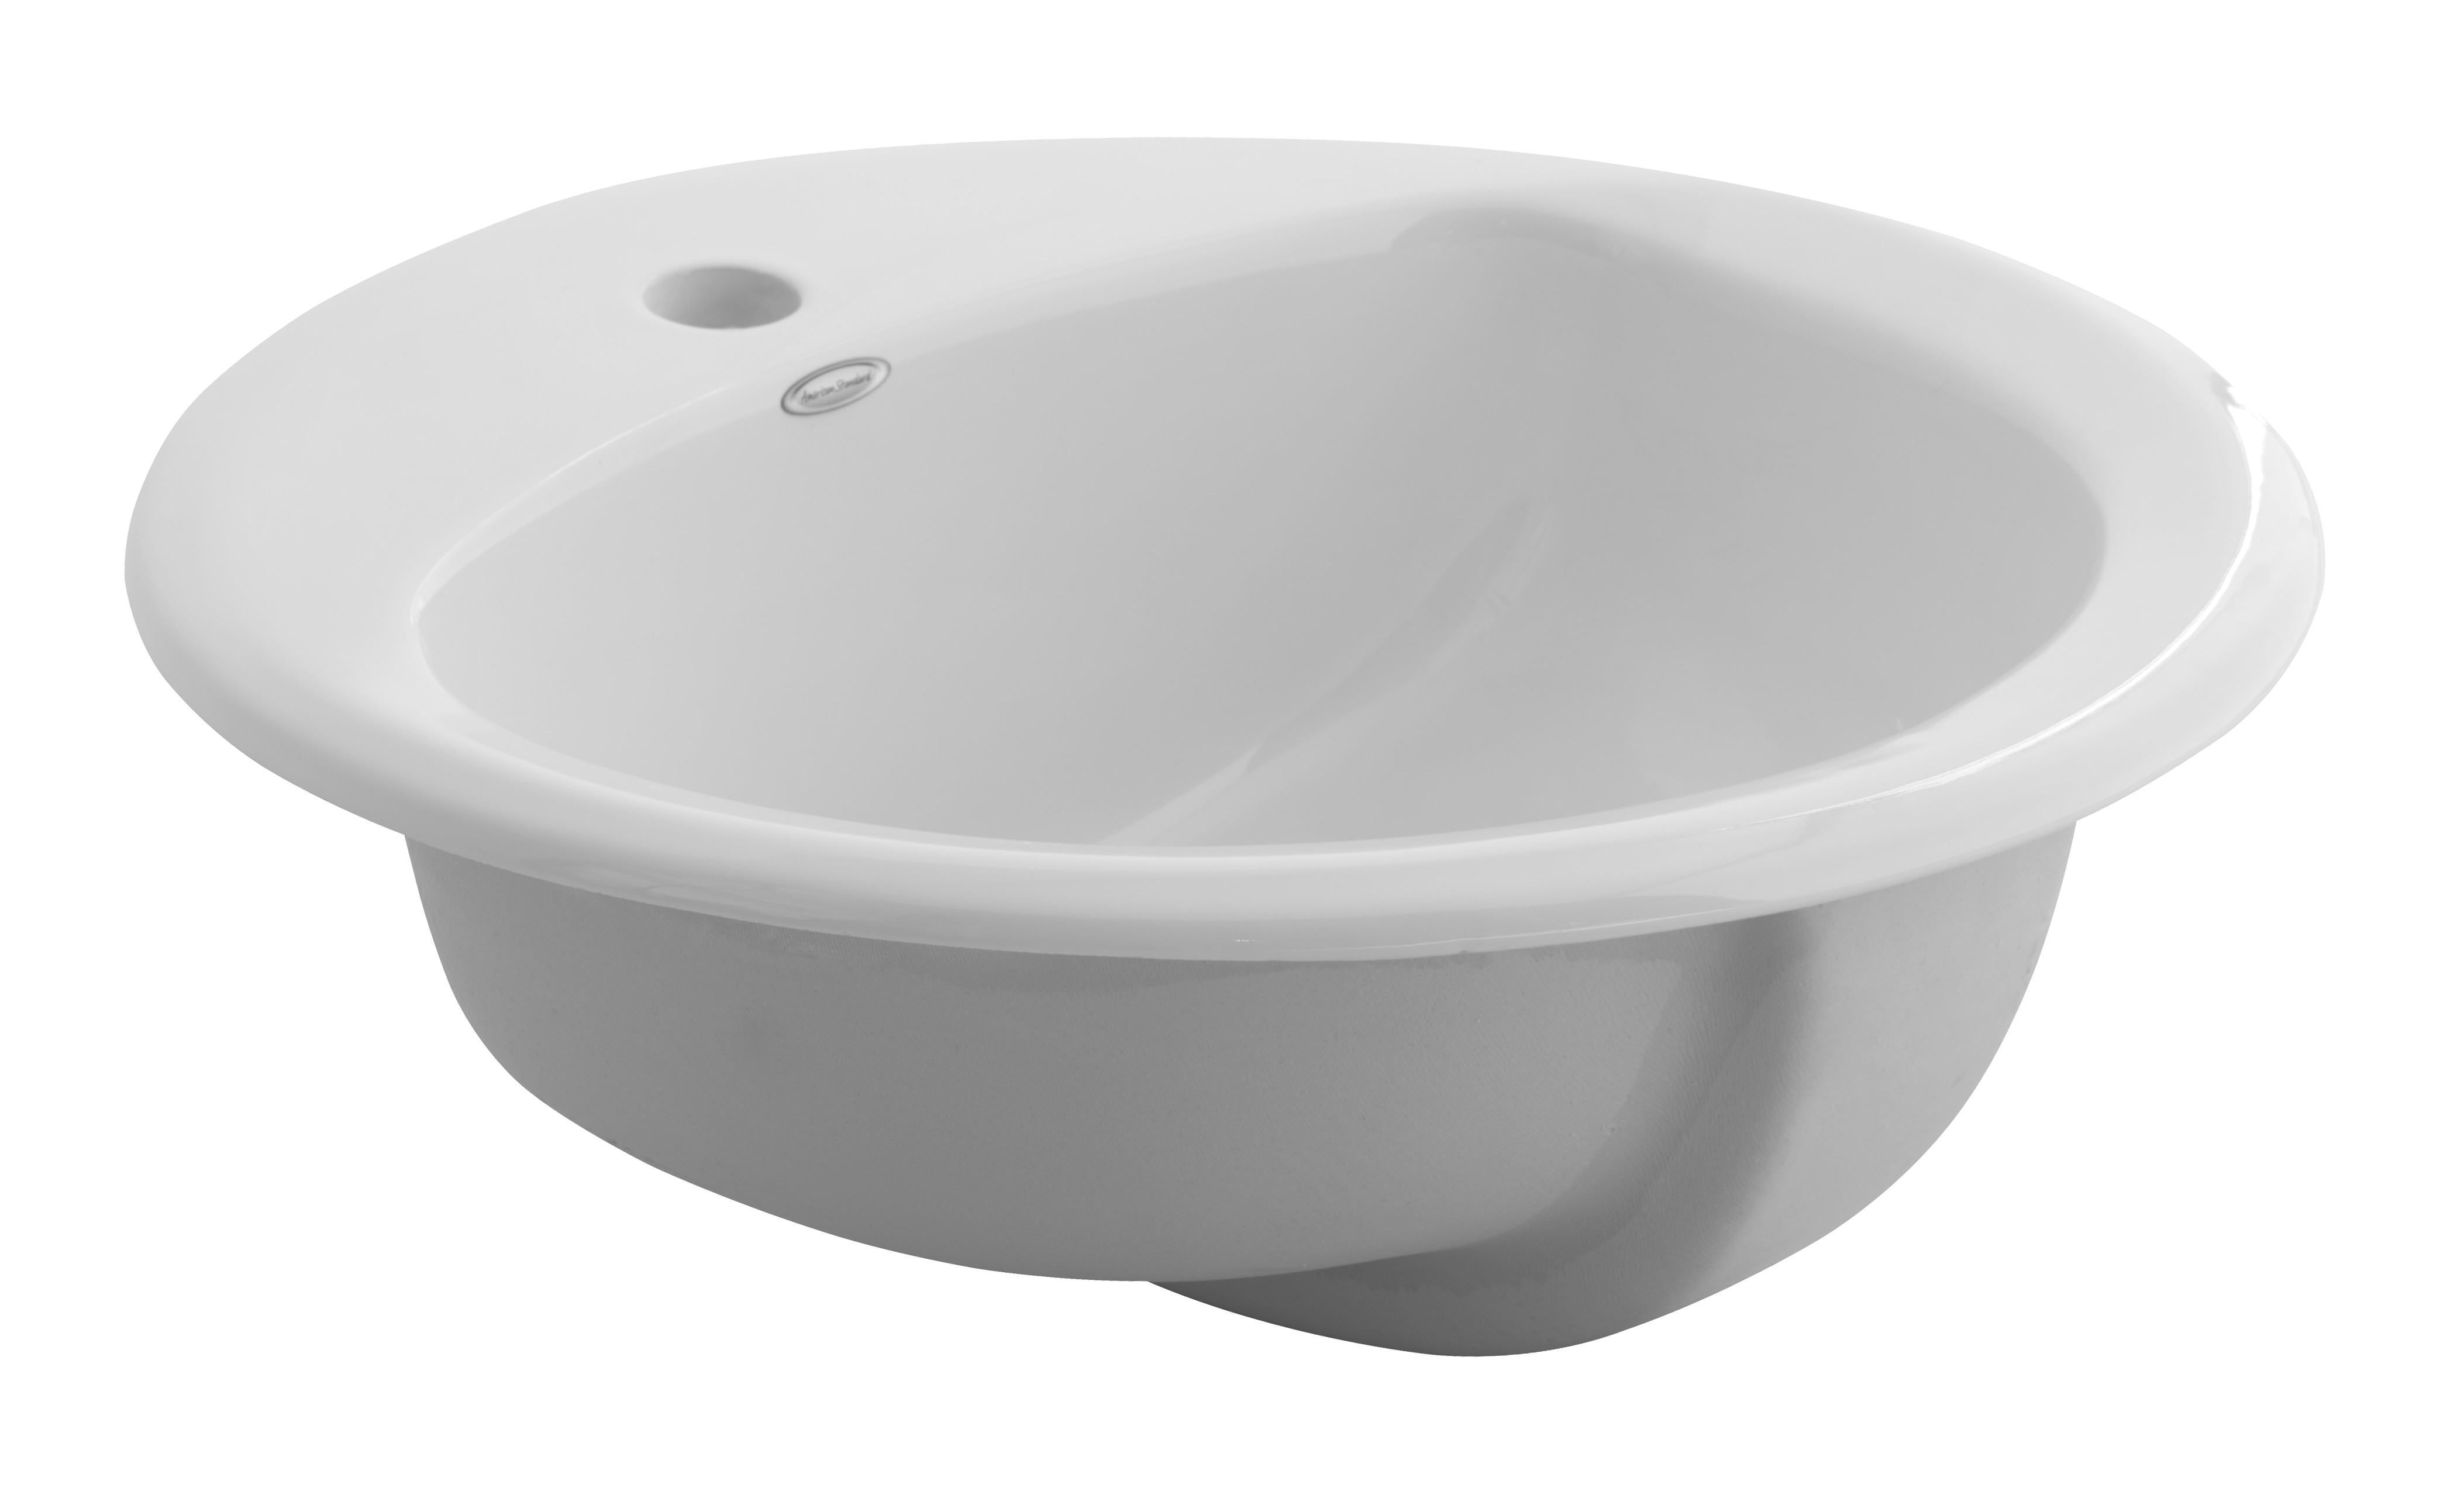 American Standard 0490.156.020 Rondalyn™ Self-Rimming Bathroom Sink With Front Overflow, Round, 19-1/8 in W x 7-3/8 in H, Countertop Mount, Vitreous China, White, Import